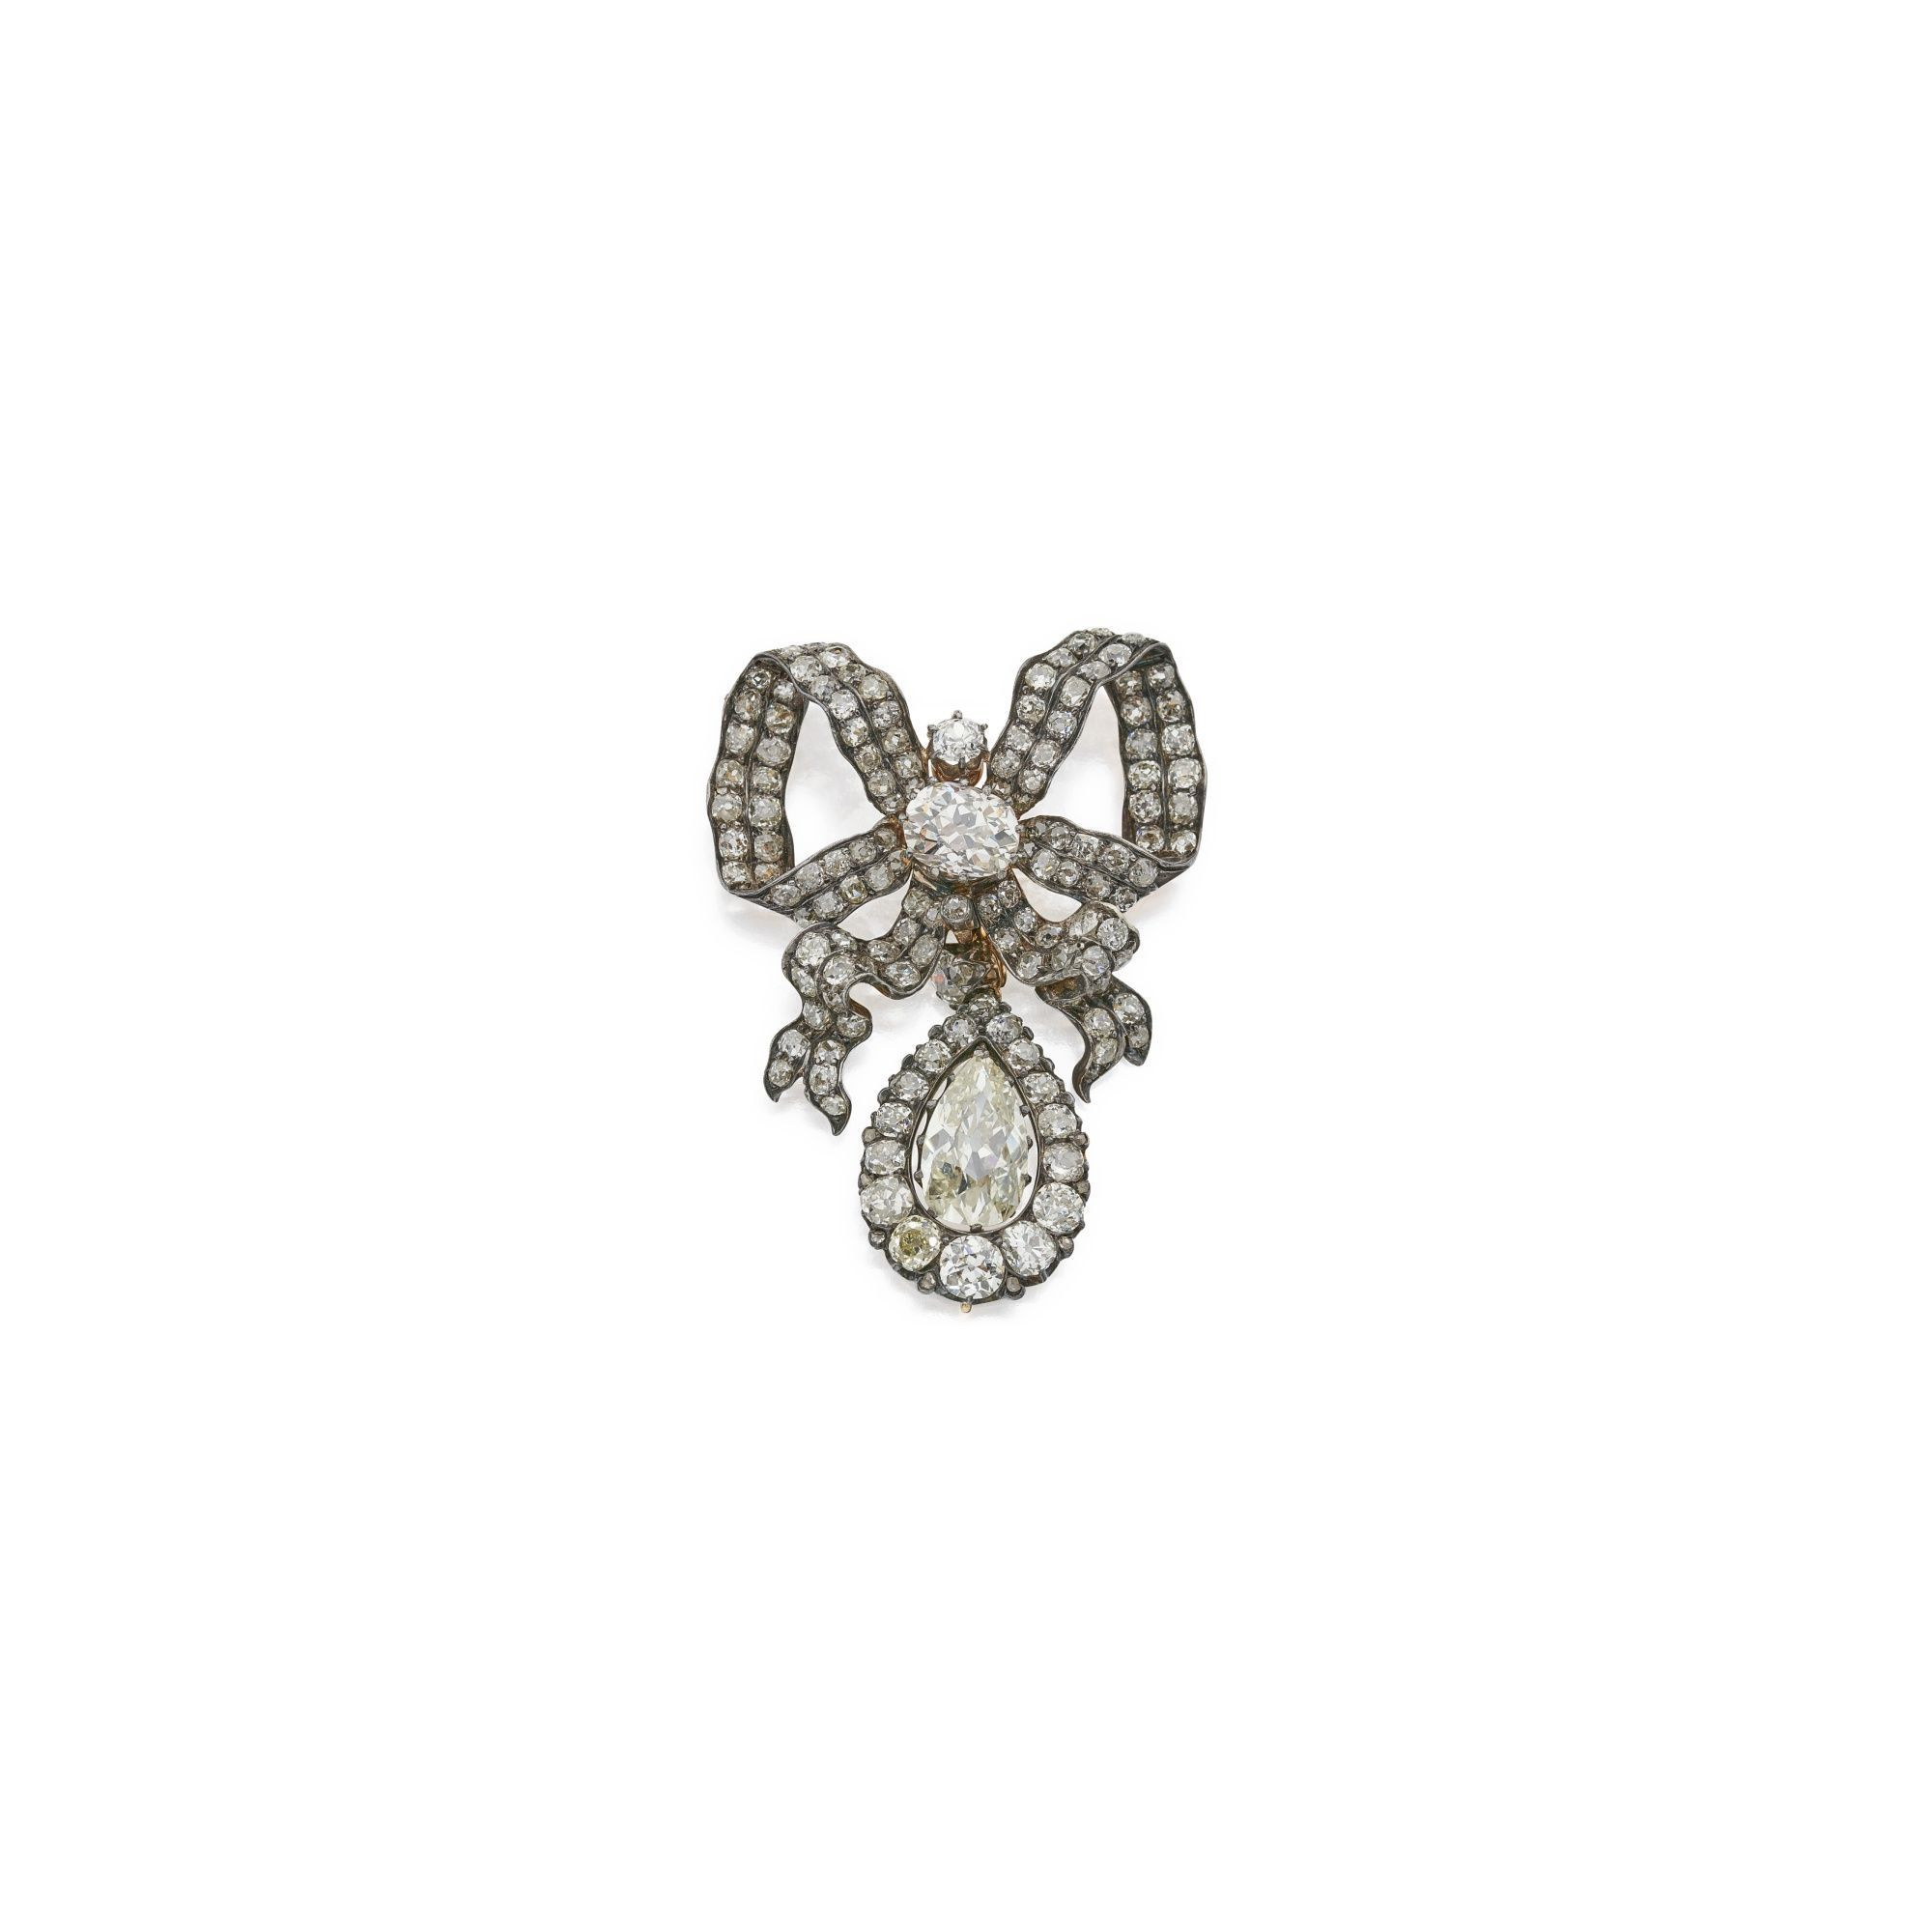 Diamond pendantbrooch the center of the bow set with a carat